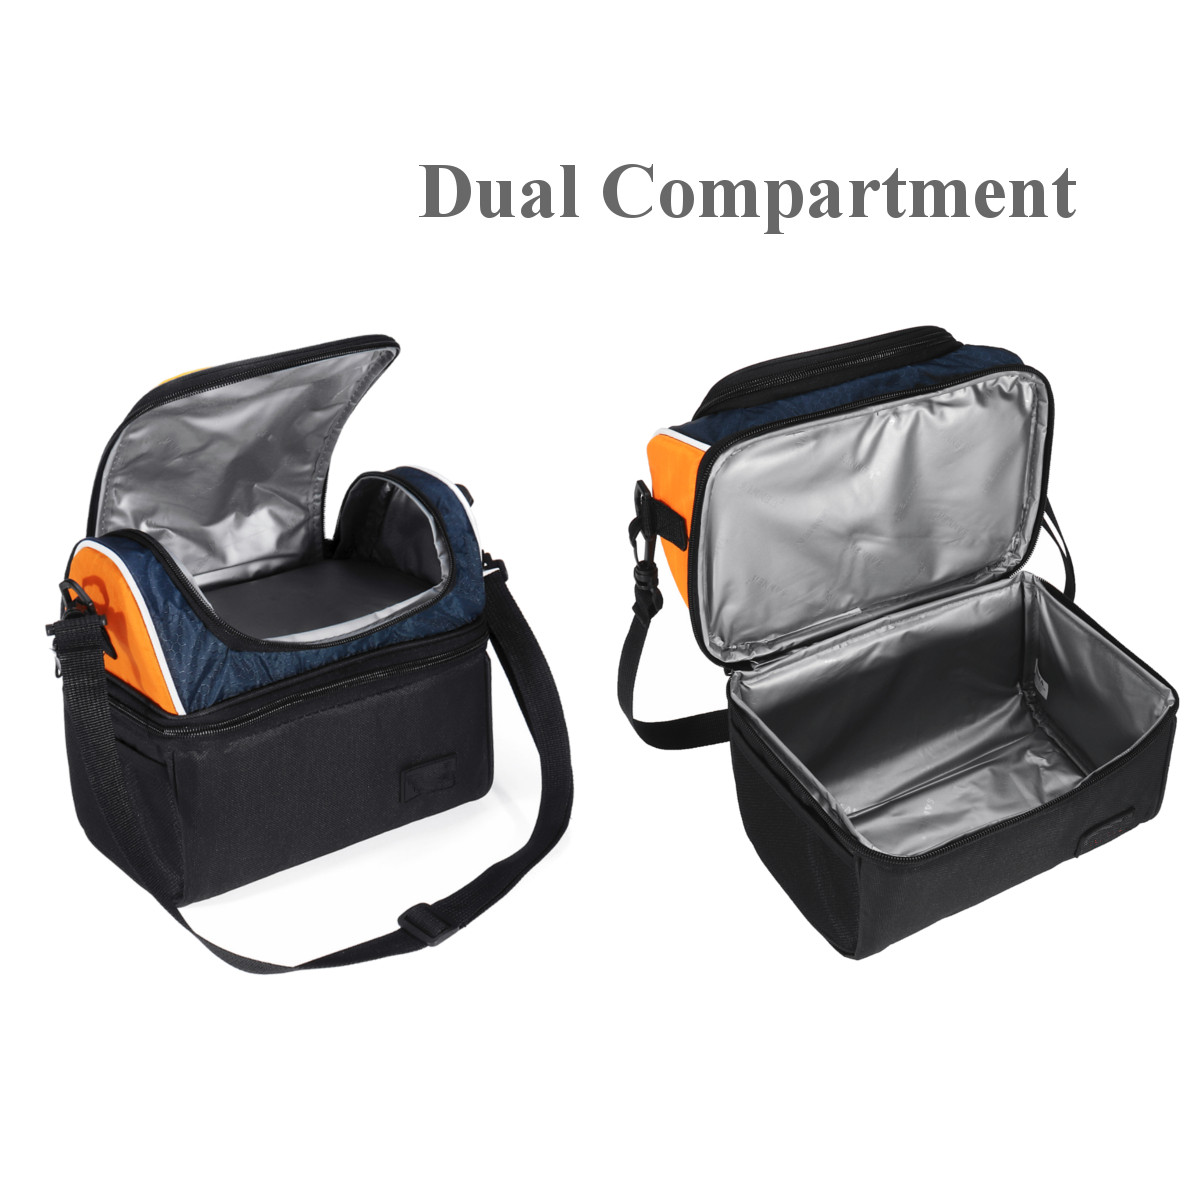 Large/Medium Capacity Waterproof travelingbag Insulated Lunch Cooler Bag Box Tote Large Capacity Work School Travel Picnic Hot Cold For Men Women Kids Shoulder Strap